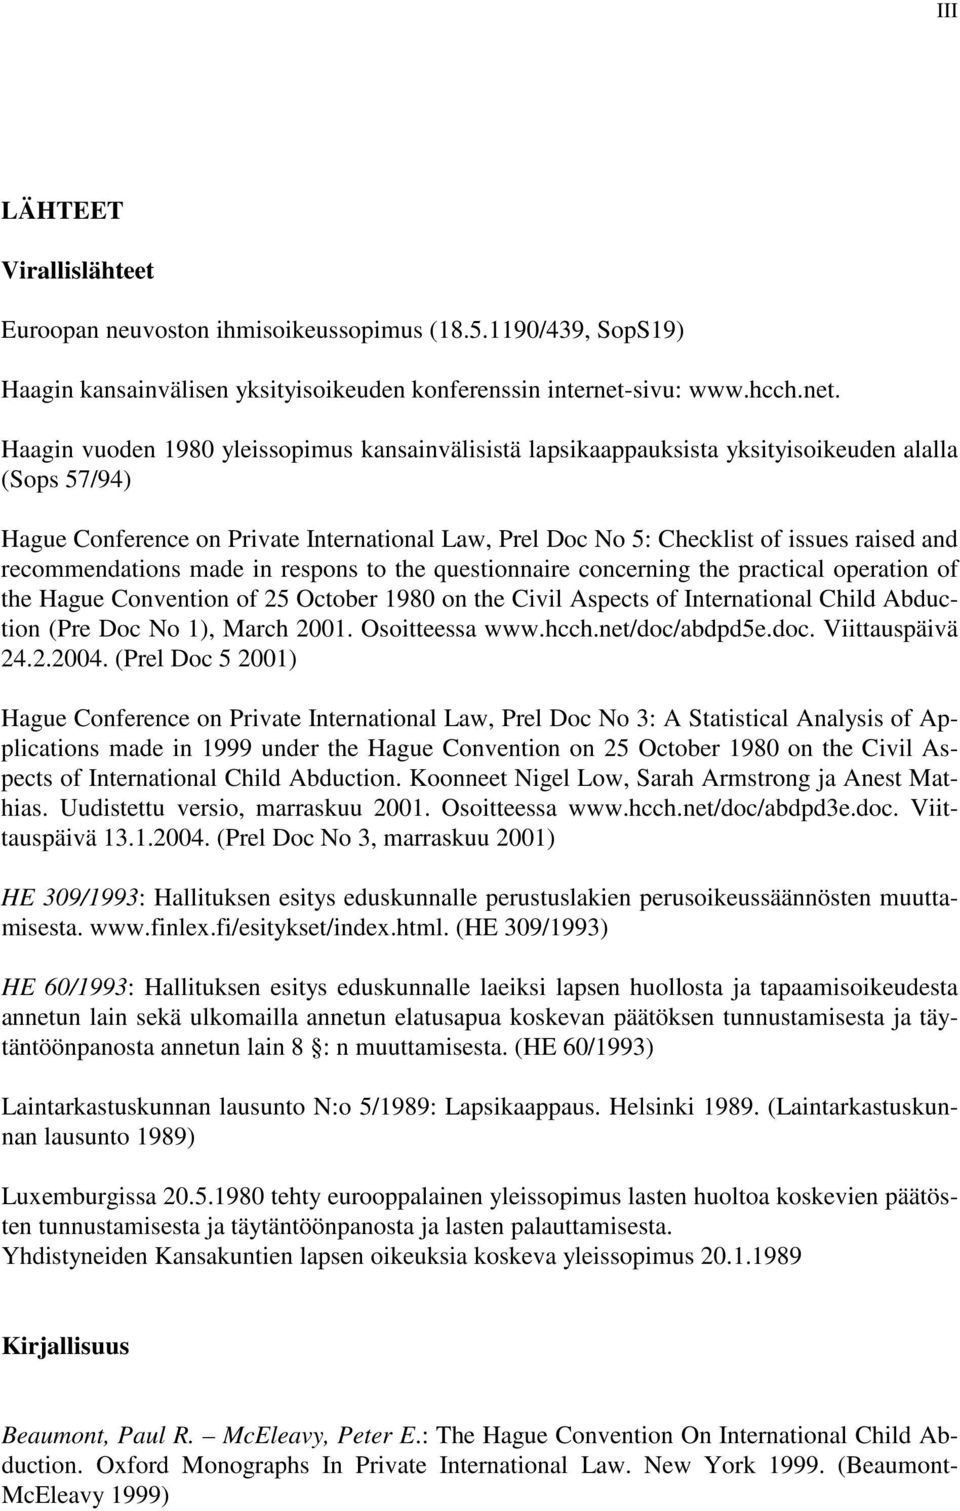 Haagin vuoden 1980 yleissopimus kansainvälisistä lapsikaappauksista yksityisoikeuden alalla (Sops 57/94) Hague Conference on Private International Law, Prel Doc No 5: Checklist of issues raised and